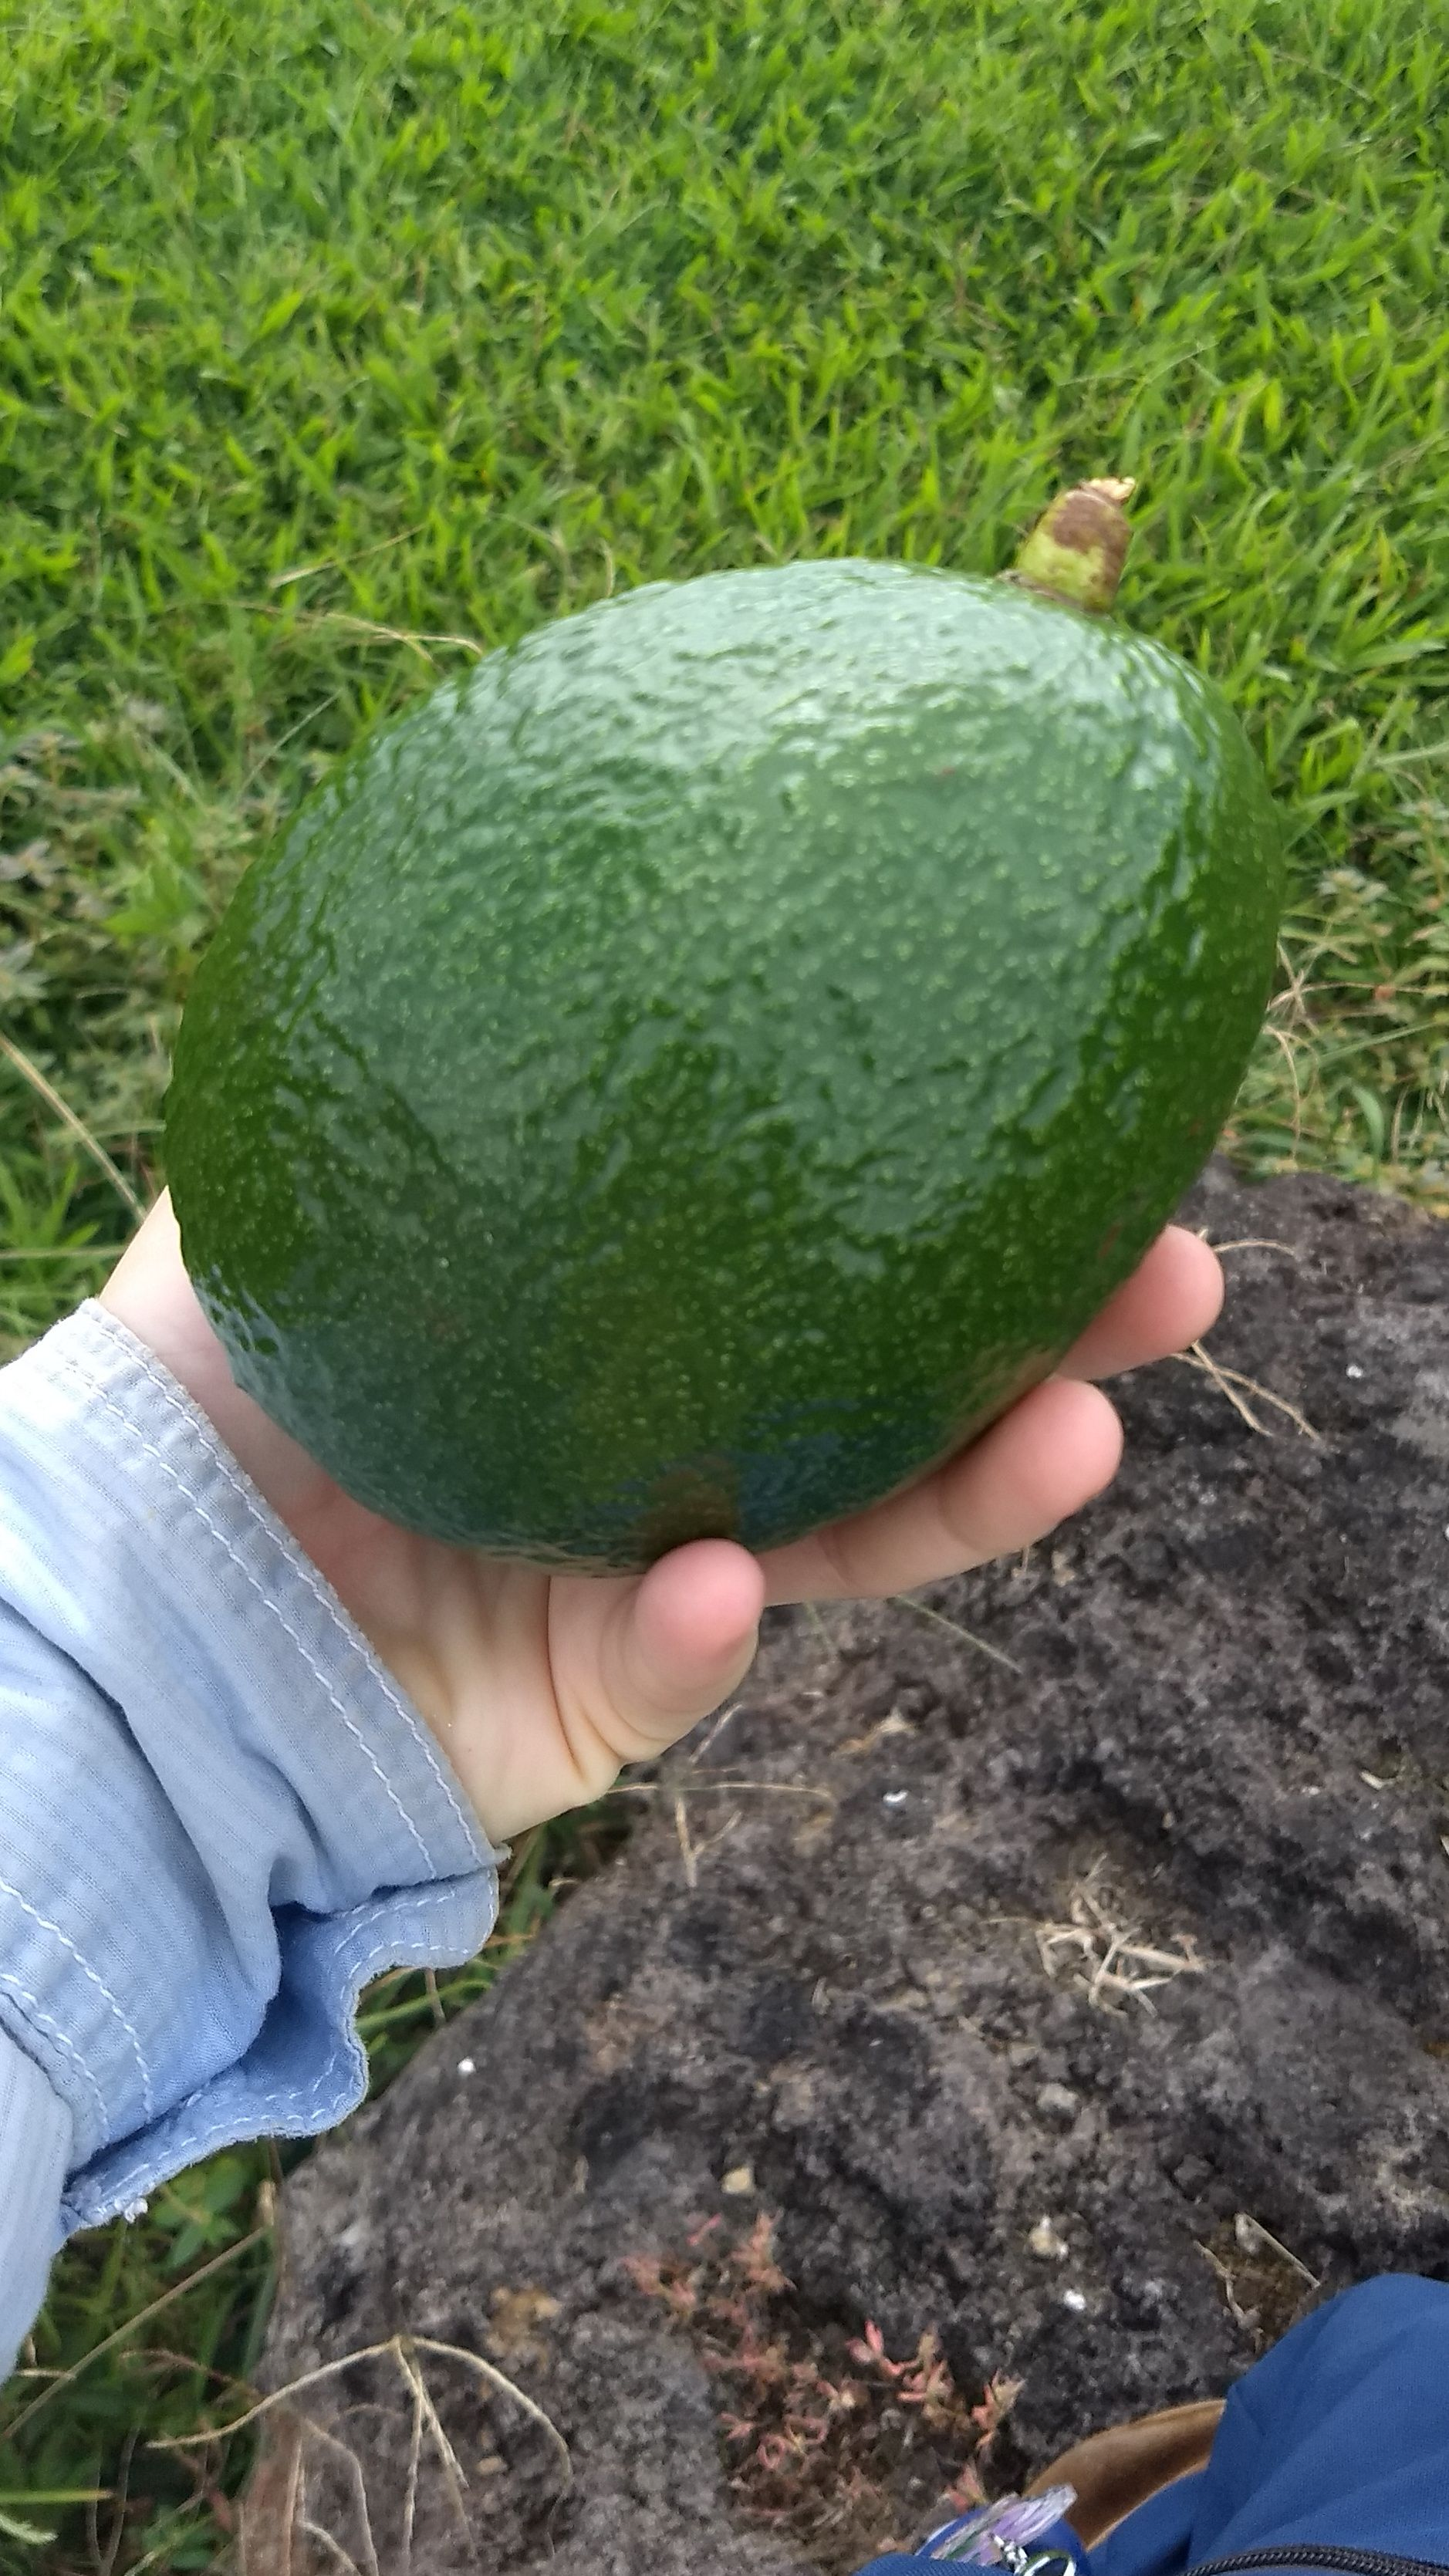 A hand holding a very large avocado.